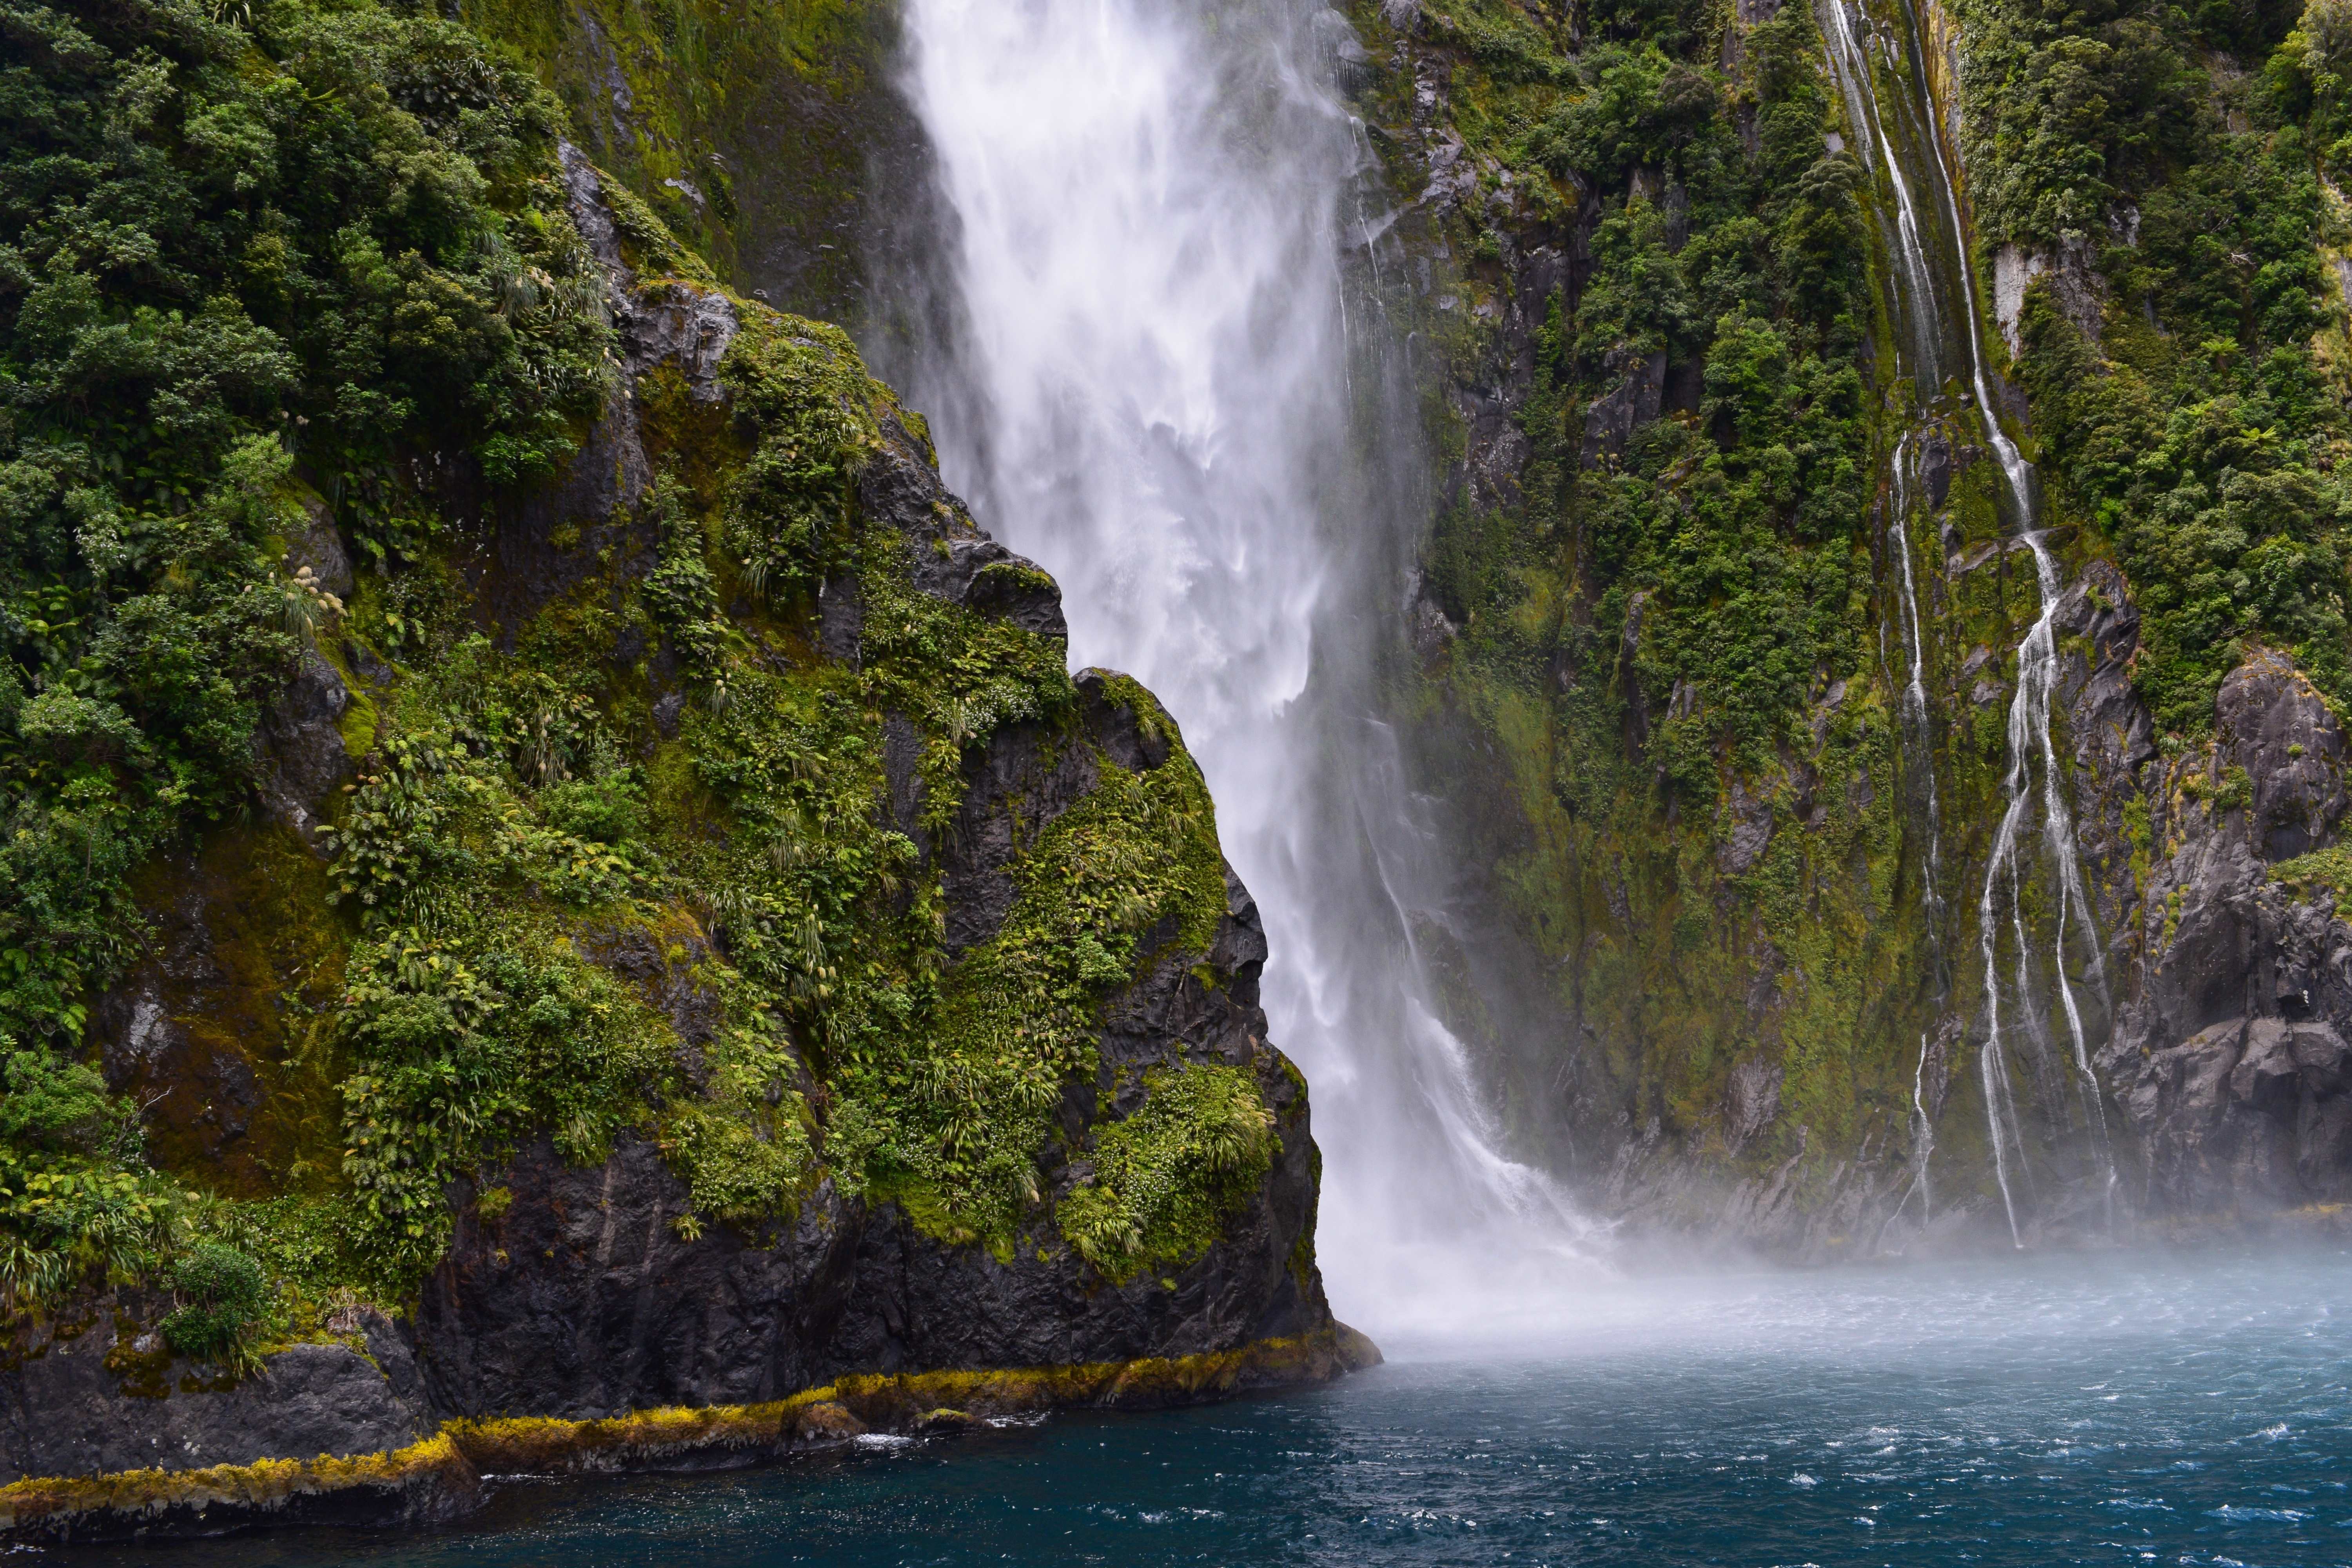 Waterfall Scenery And Landscape In New Zealand Image